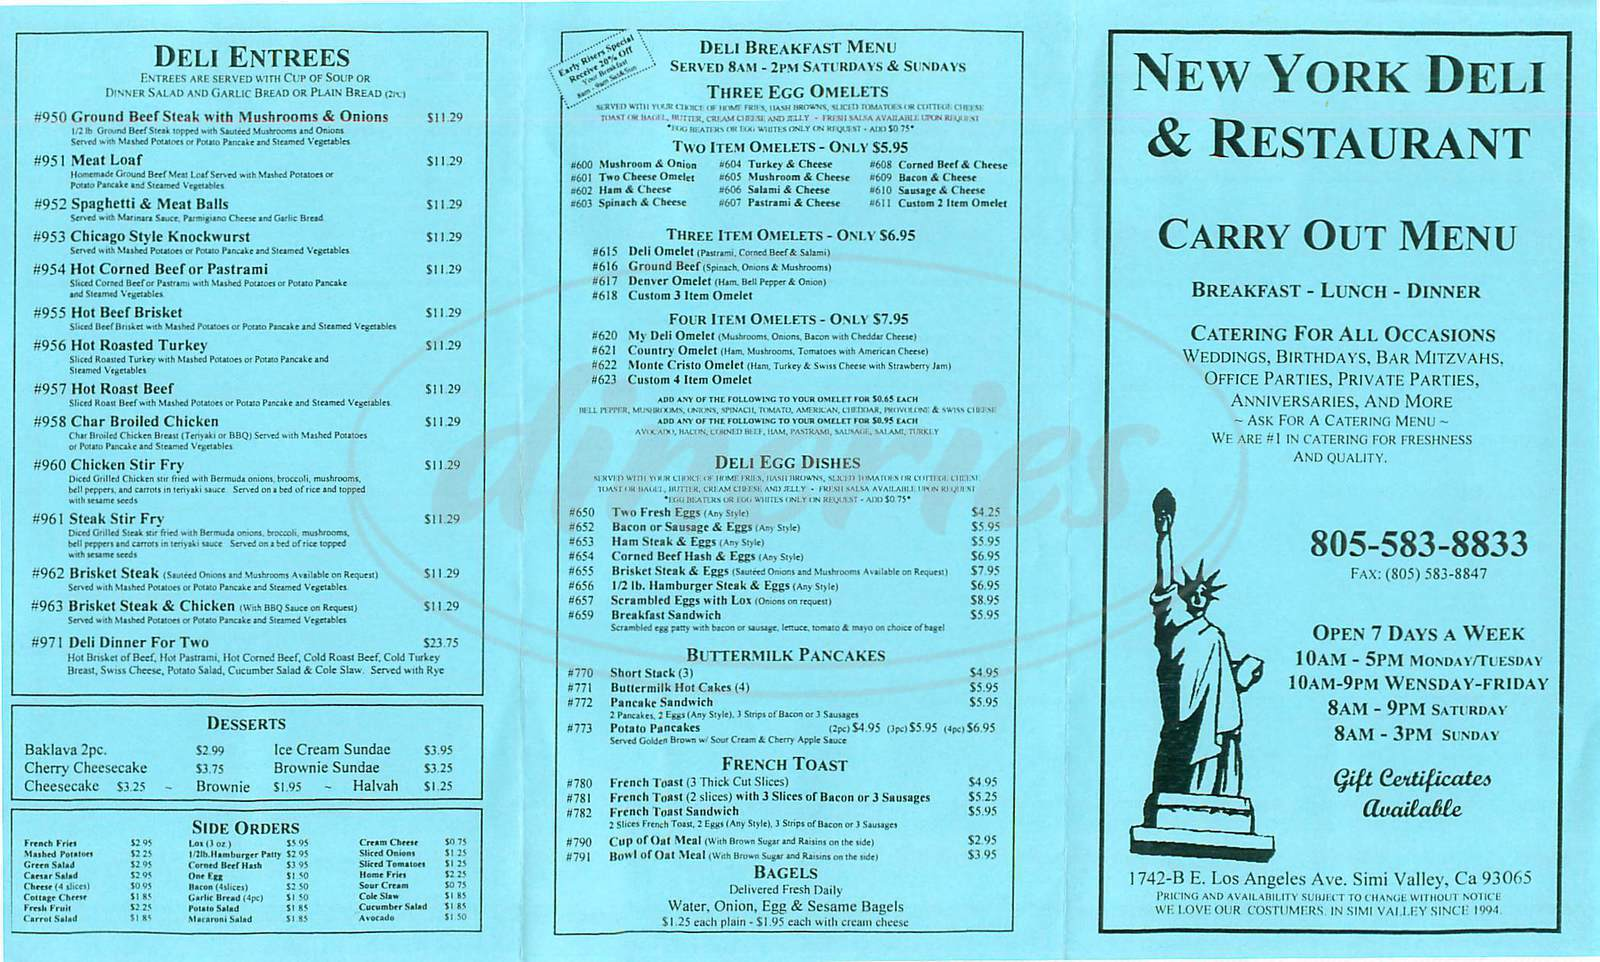 menu for New York Deli and Restaurant